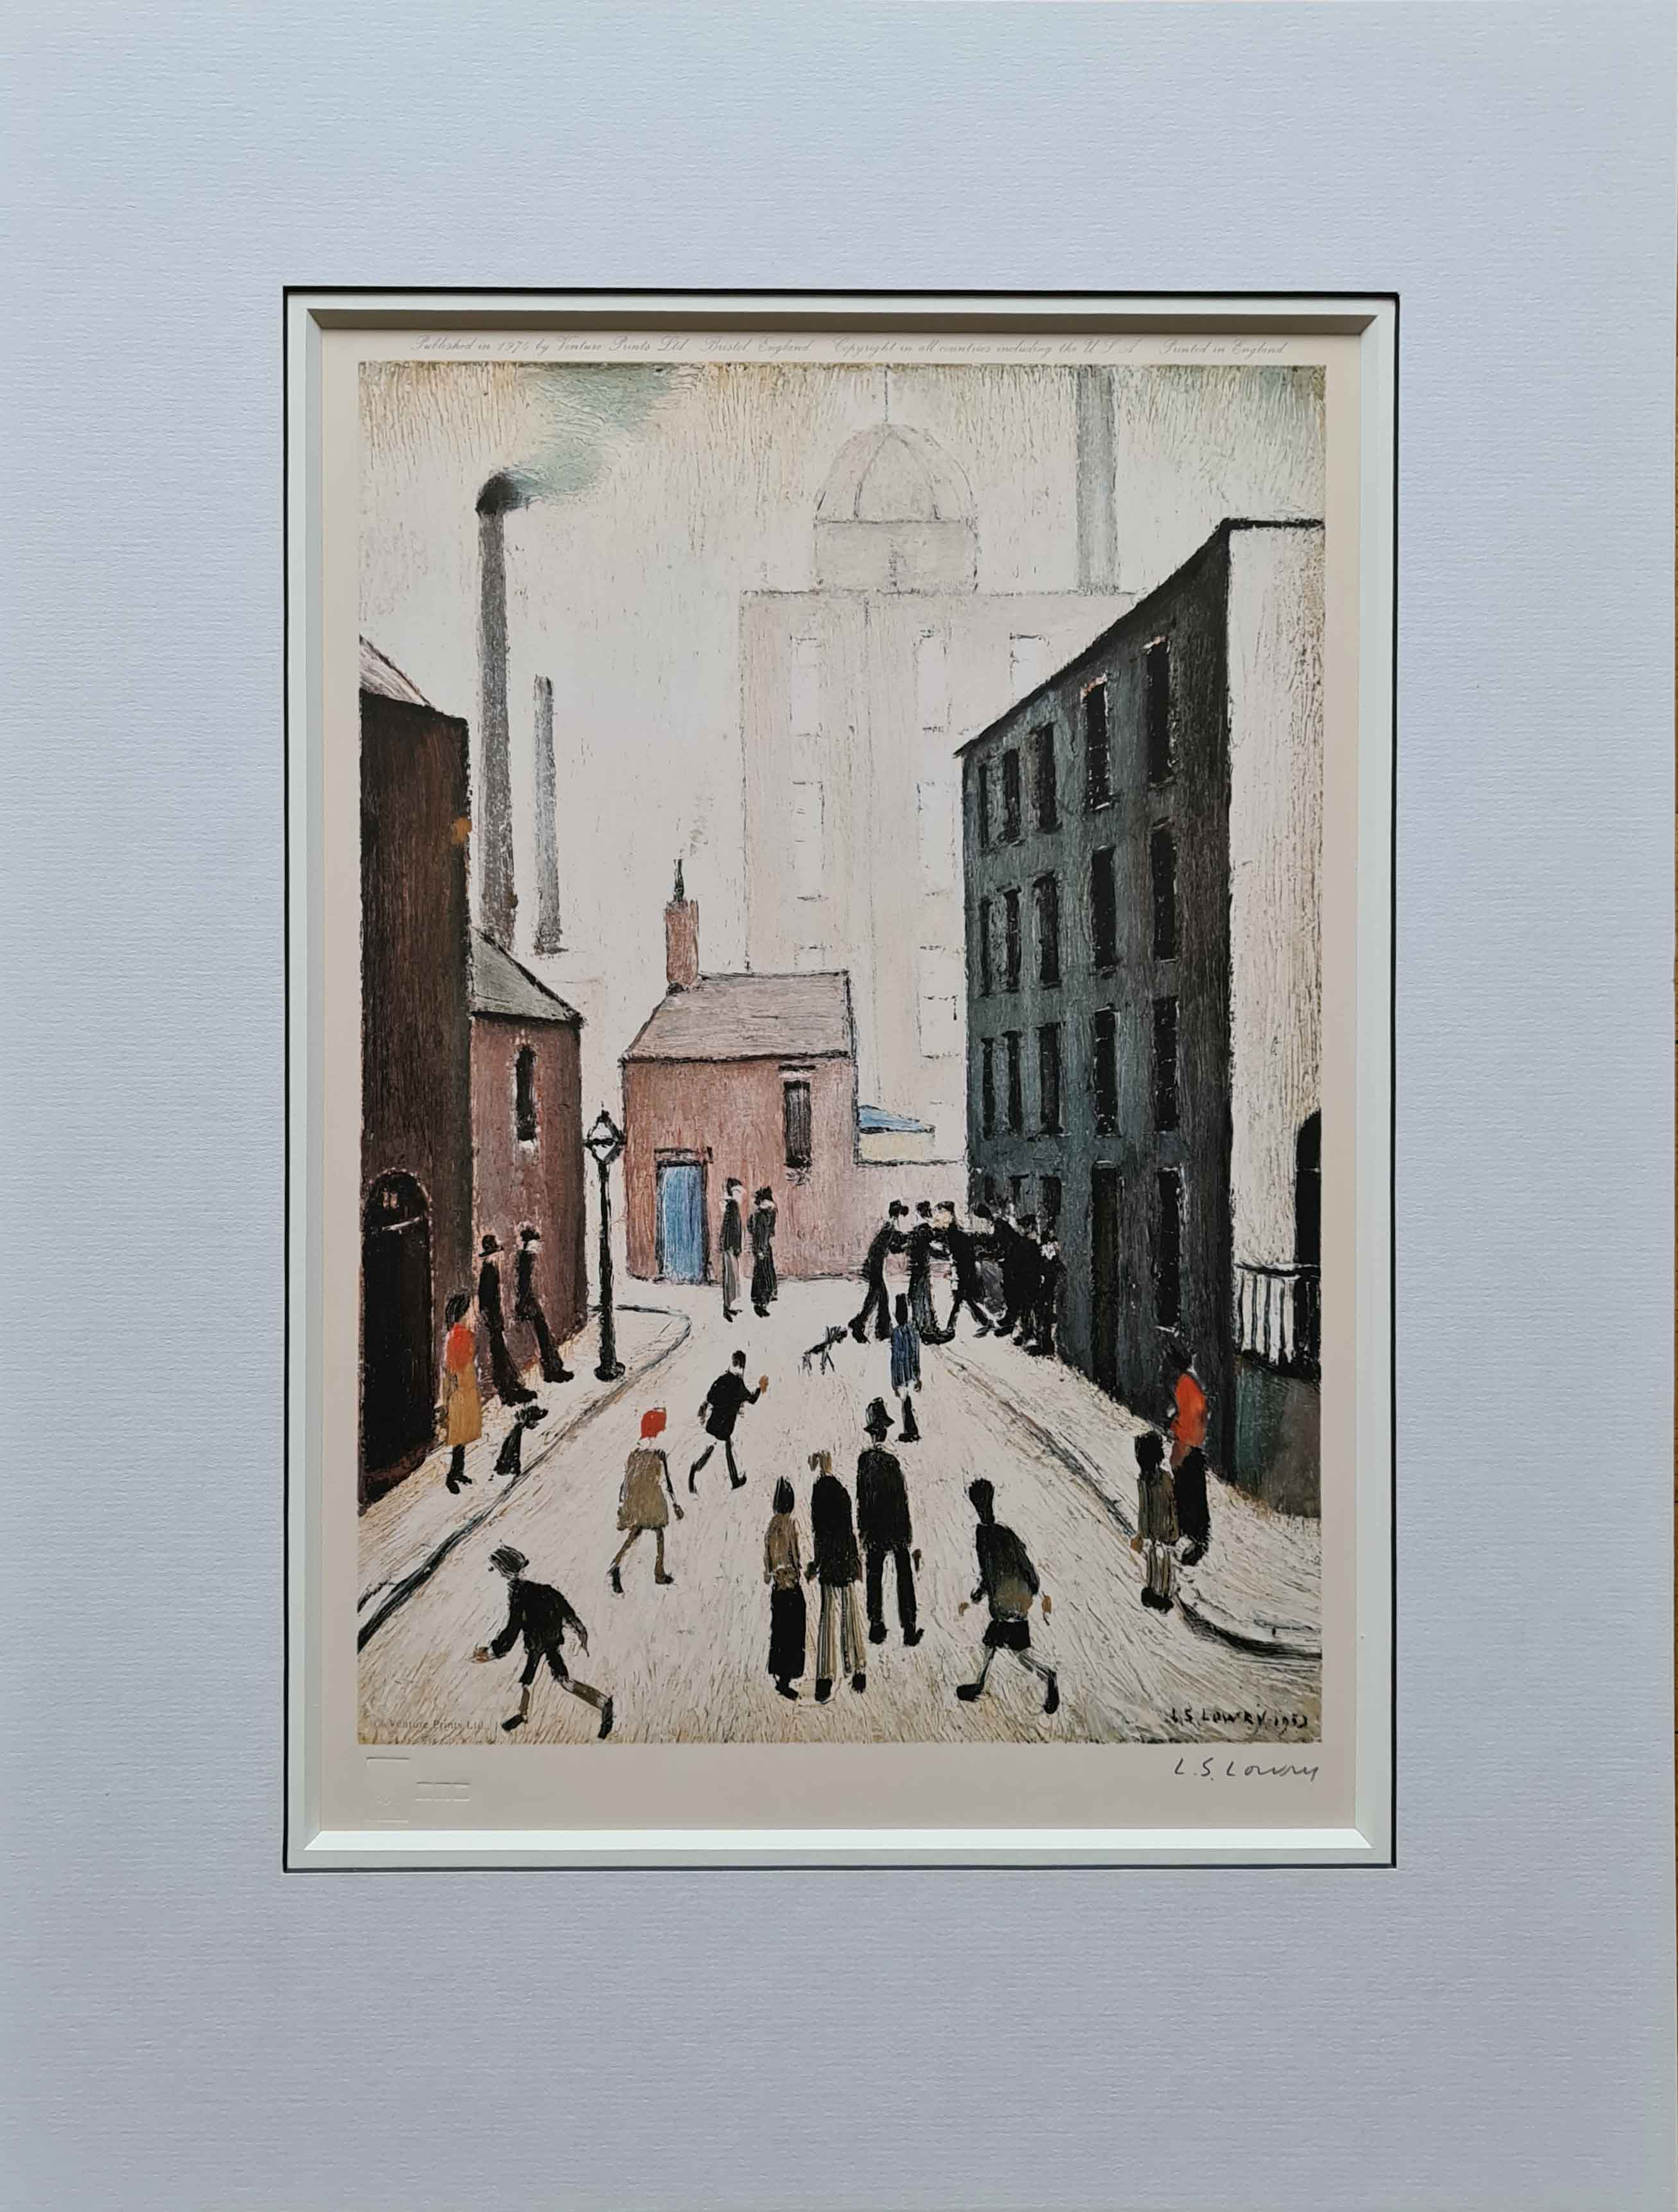 lowry, Industrial Scene, signed print lslowry